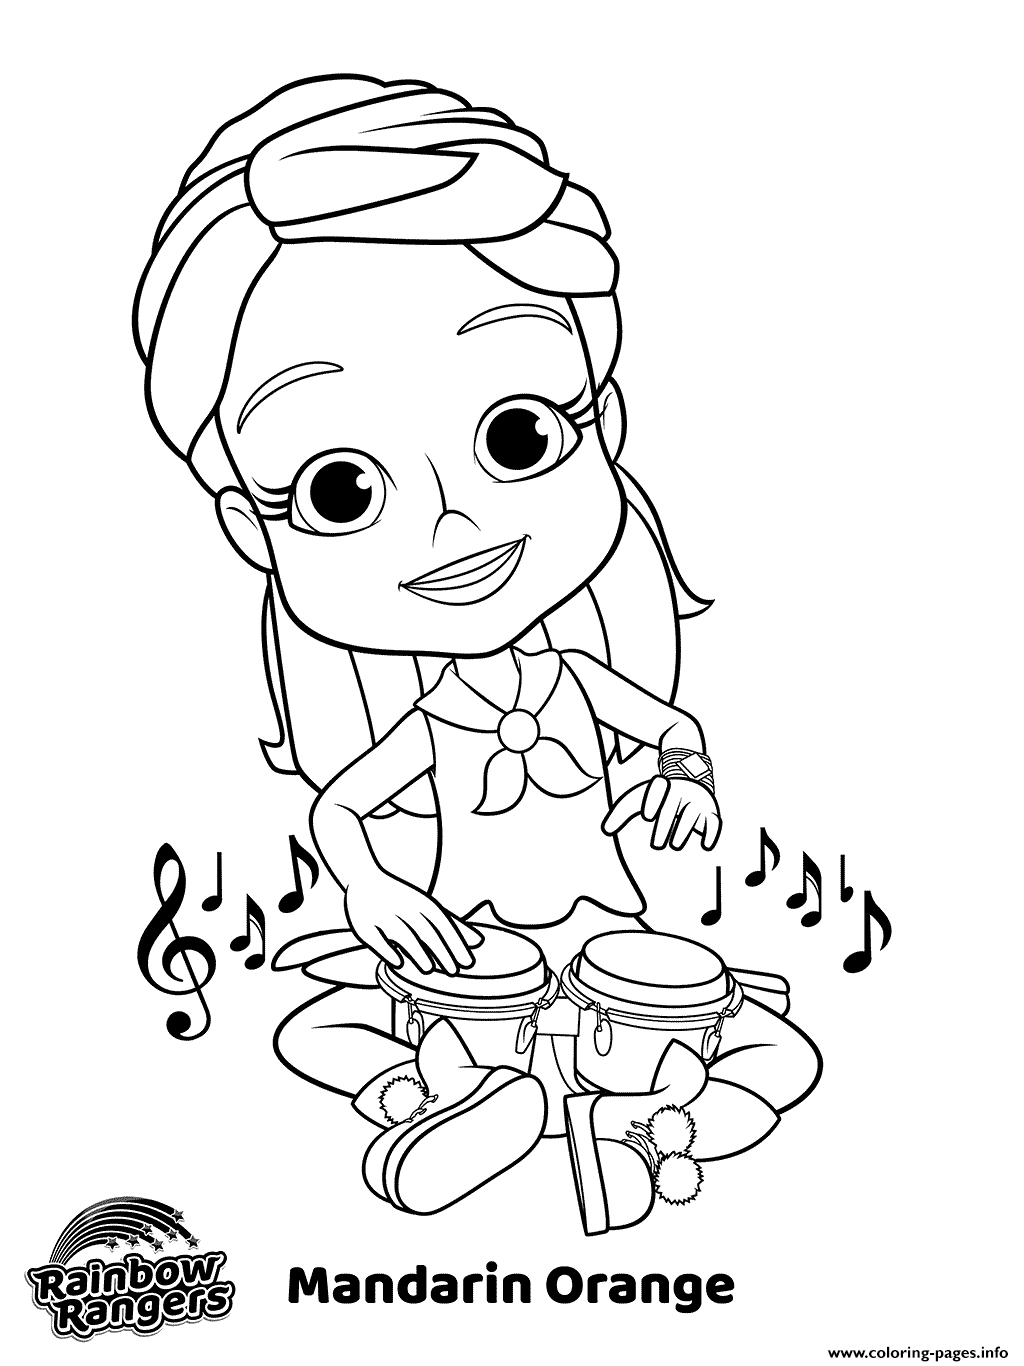 rainbow rangers coloring pages kids n funcom coloring page rainbow rangers nick jr rangers rainbow pages coloring